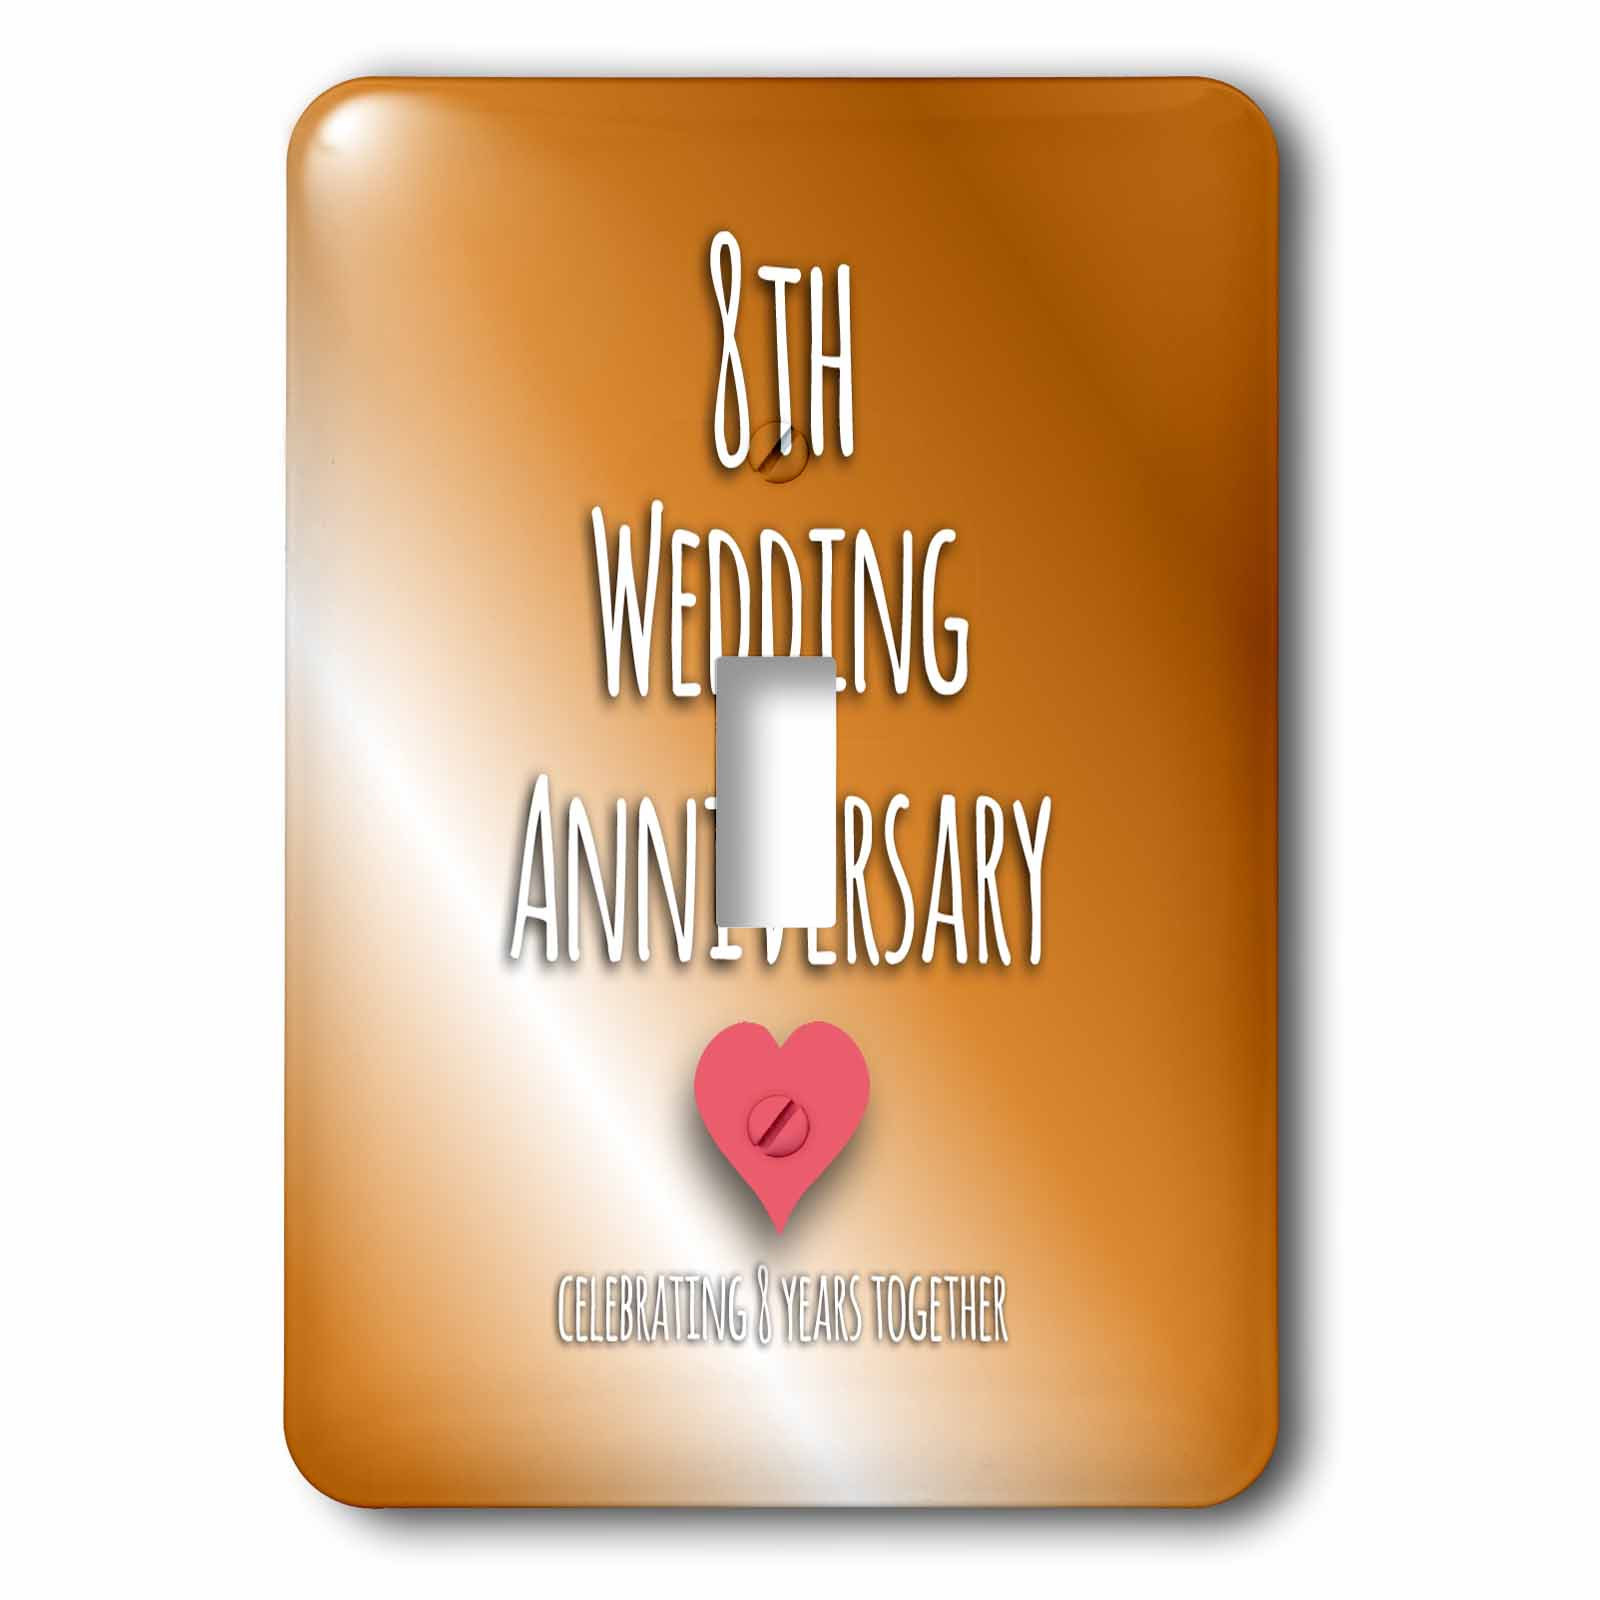 8th Wedding Anniversary.3drose 8th Wedding Anniversary Gift Bronze Celebrating 8 Years Together Eighth Anniversaries Eight Yrs Double Toggle Switch